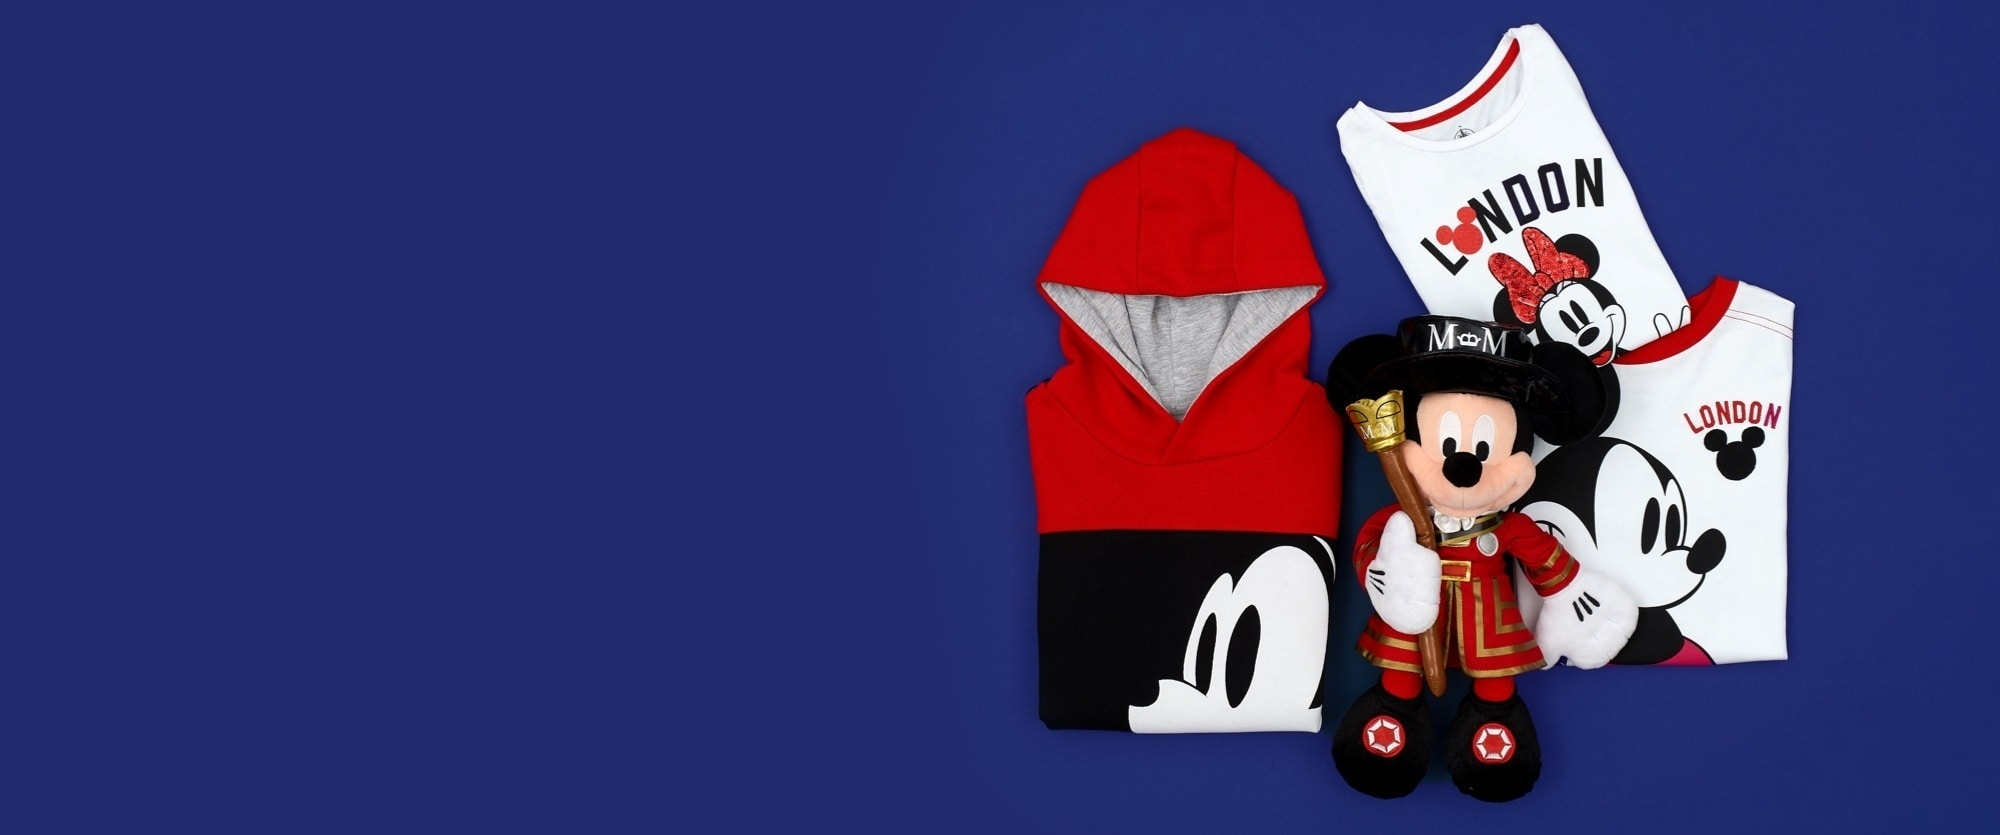 Kaufen Sie in der Disney Cities Collection bei shopDisney ein